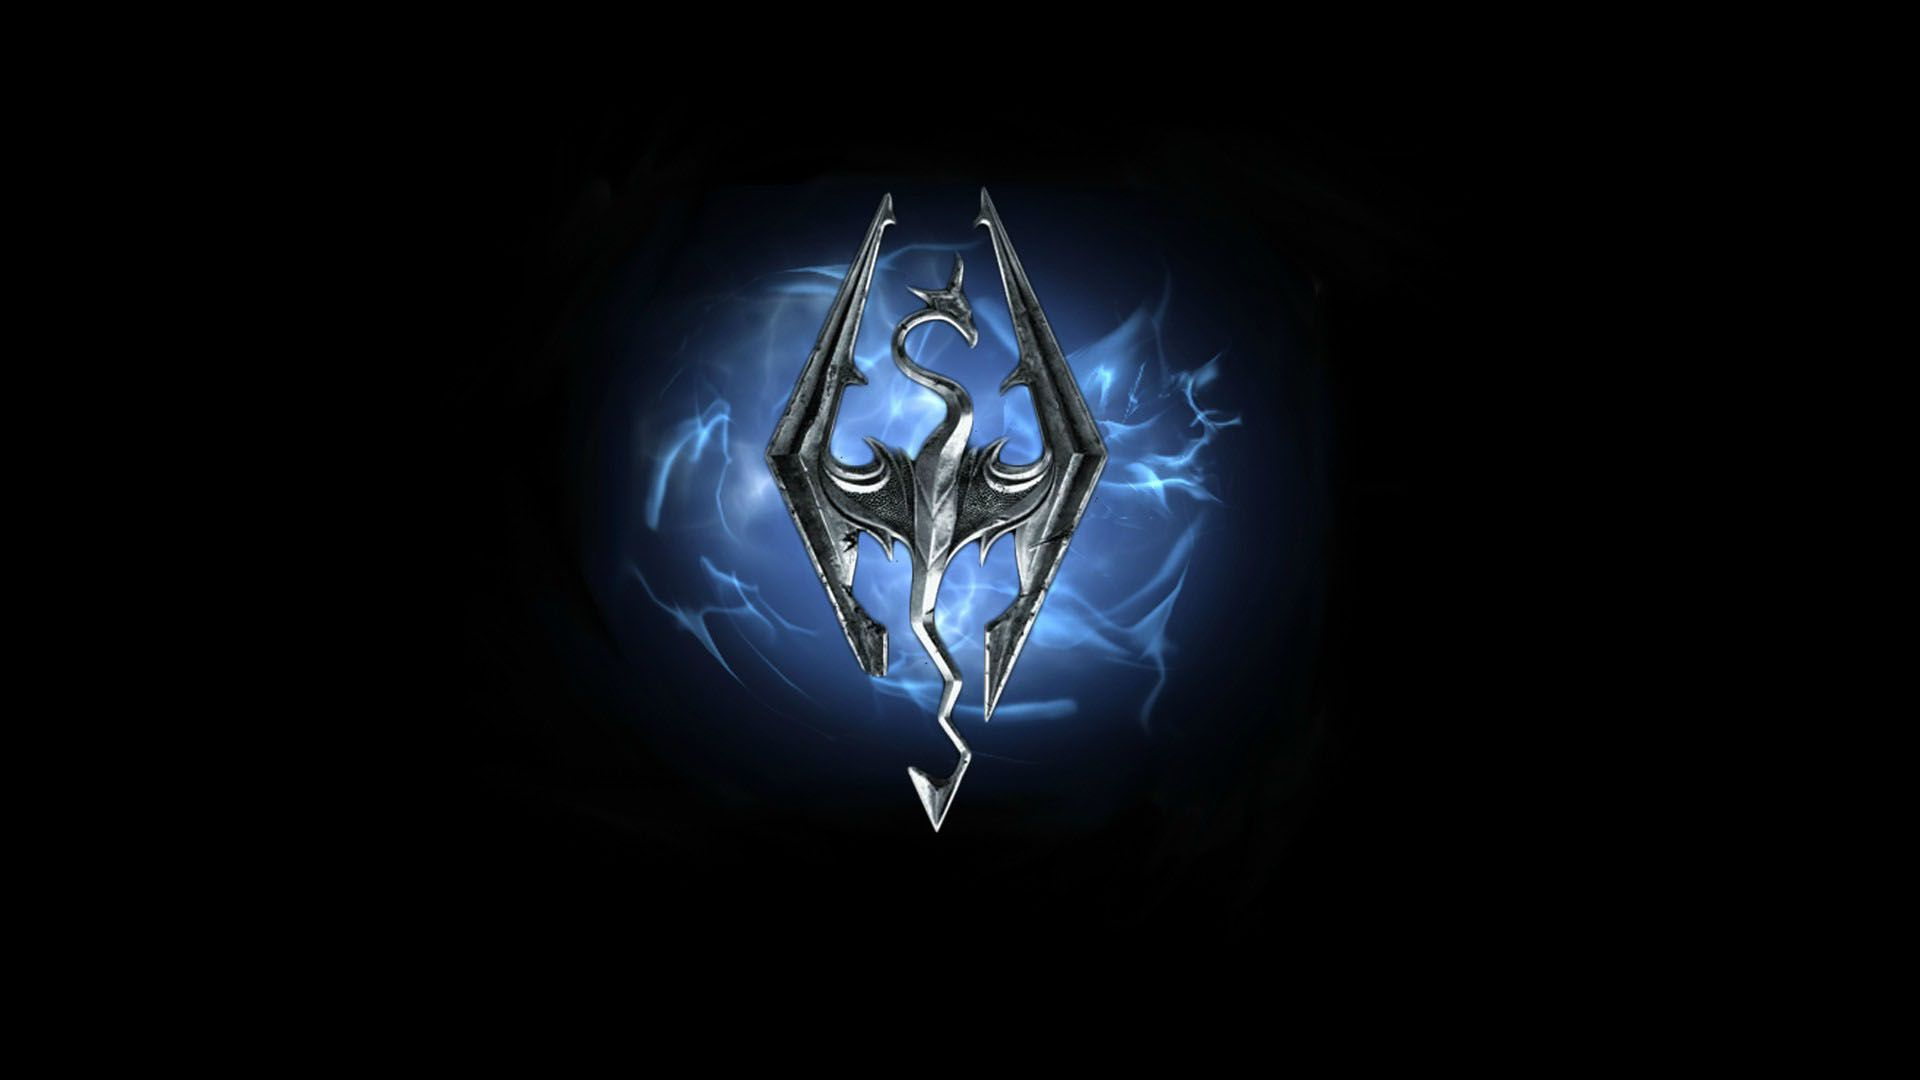 Skyrim Blue Fire Dragon Game Logo HD Wallpaper